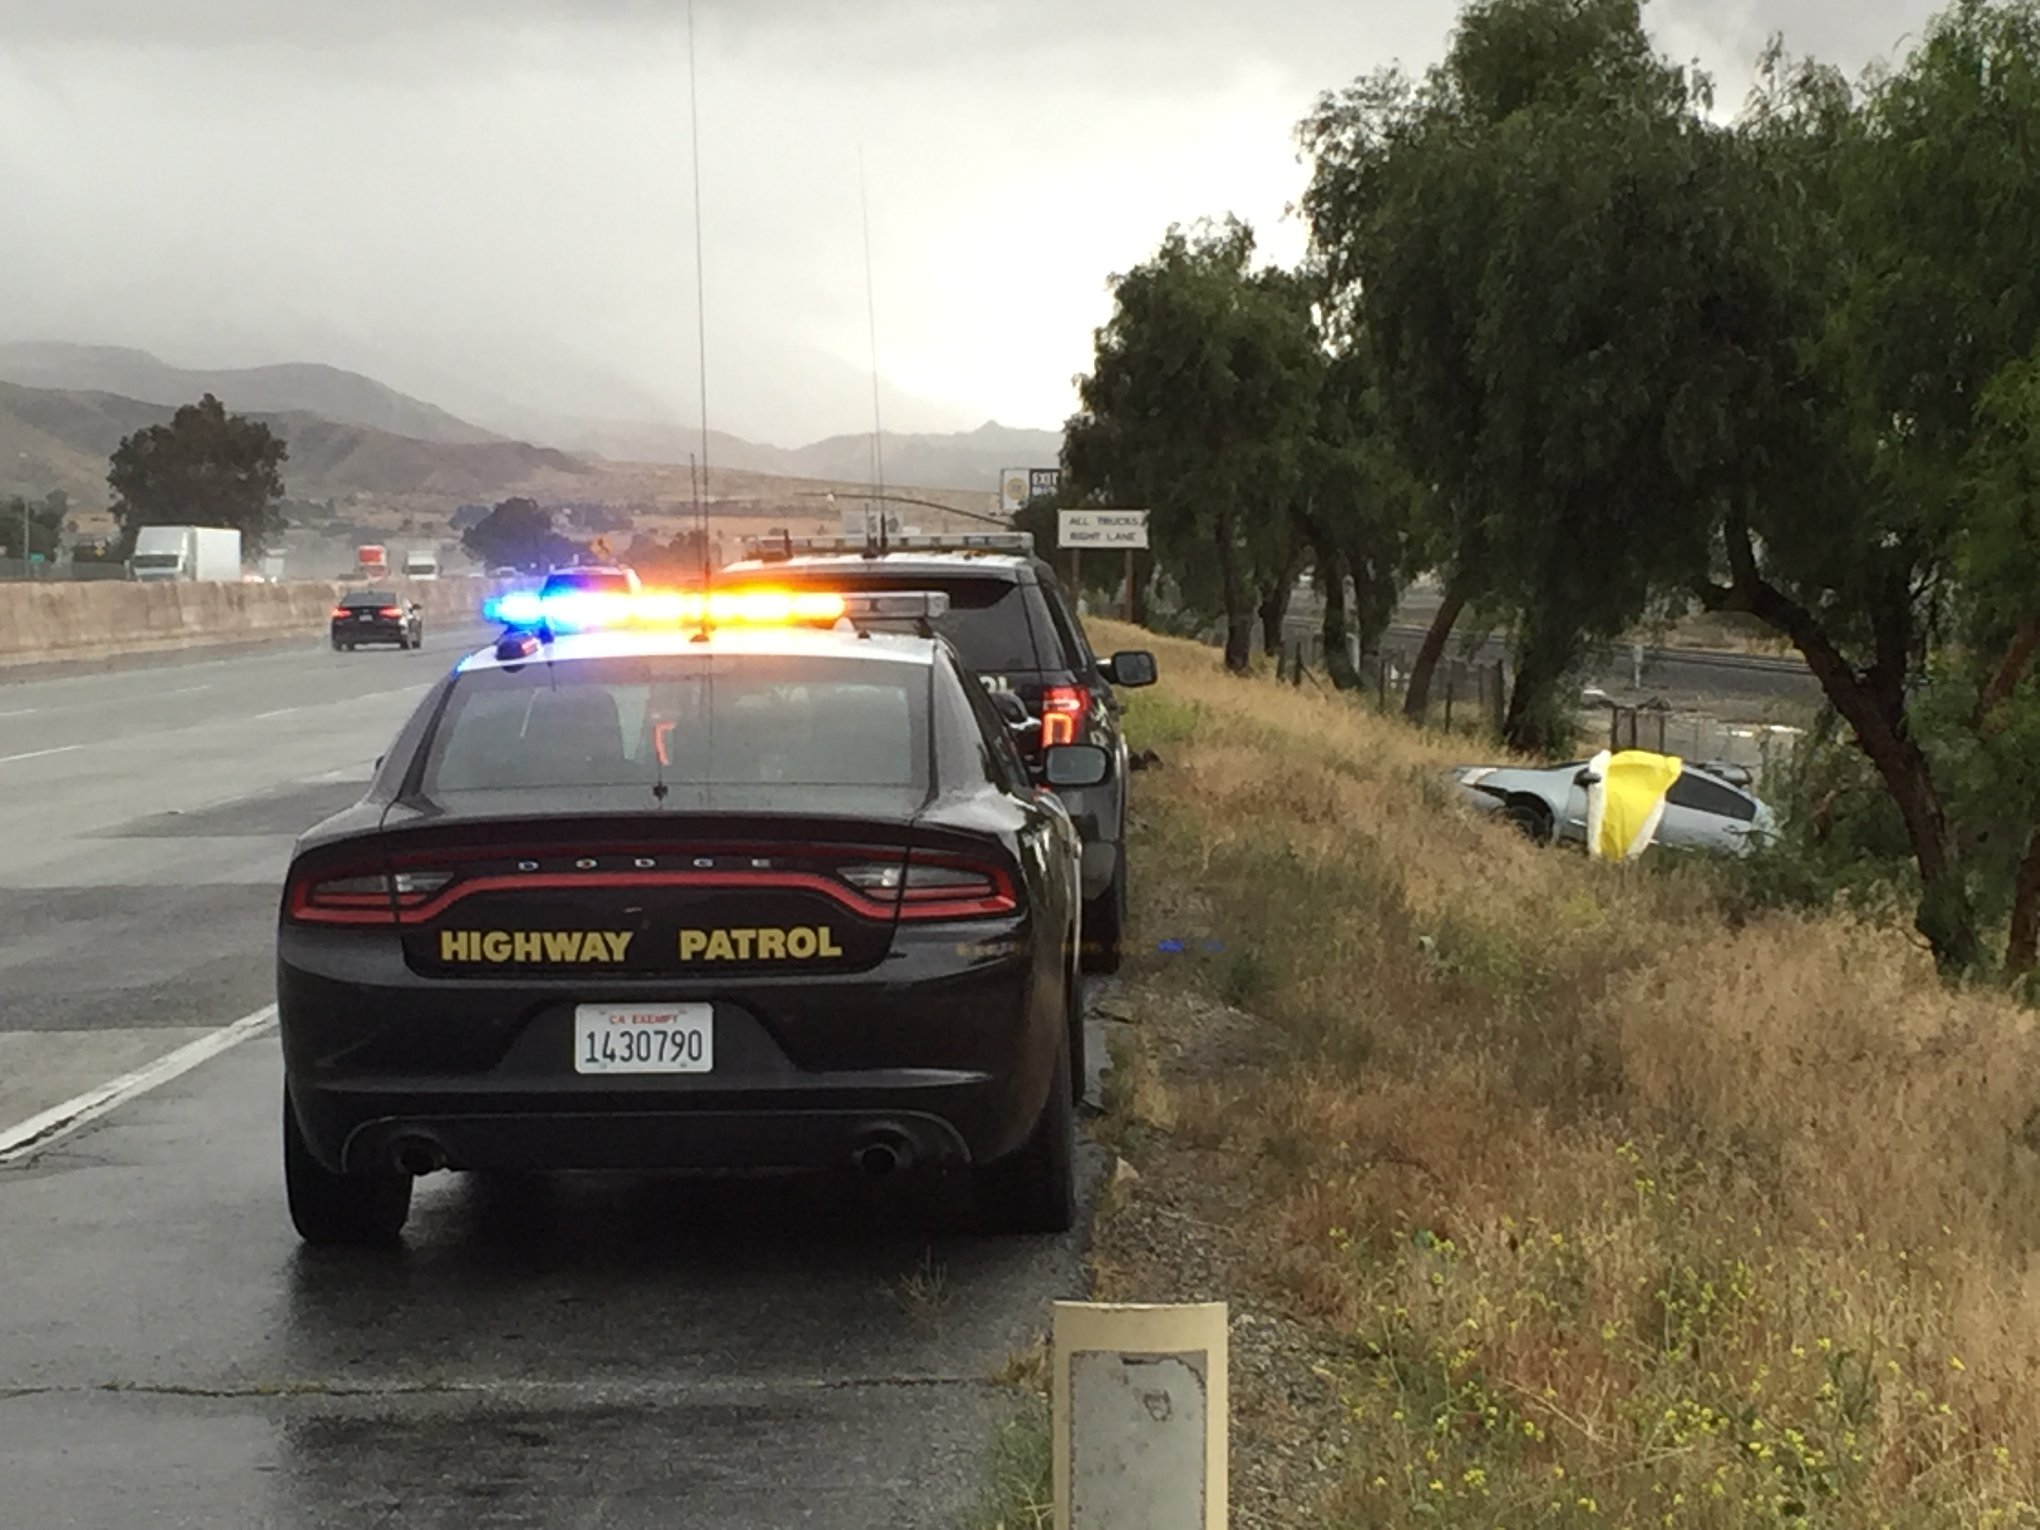 33-year-old man dead in I-10 crash near Cabazon | Cactus Hugs